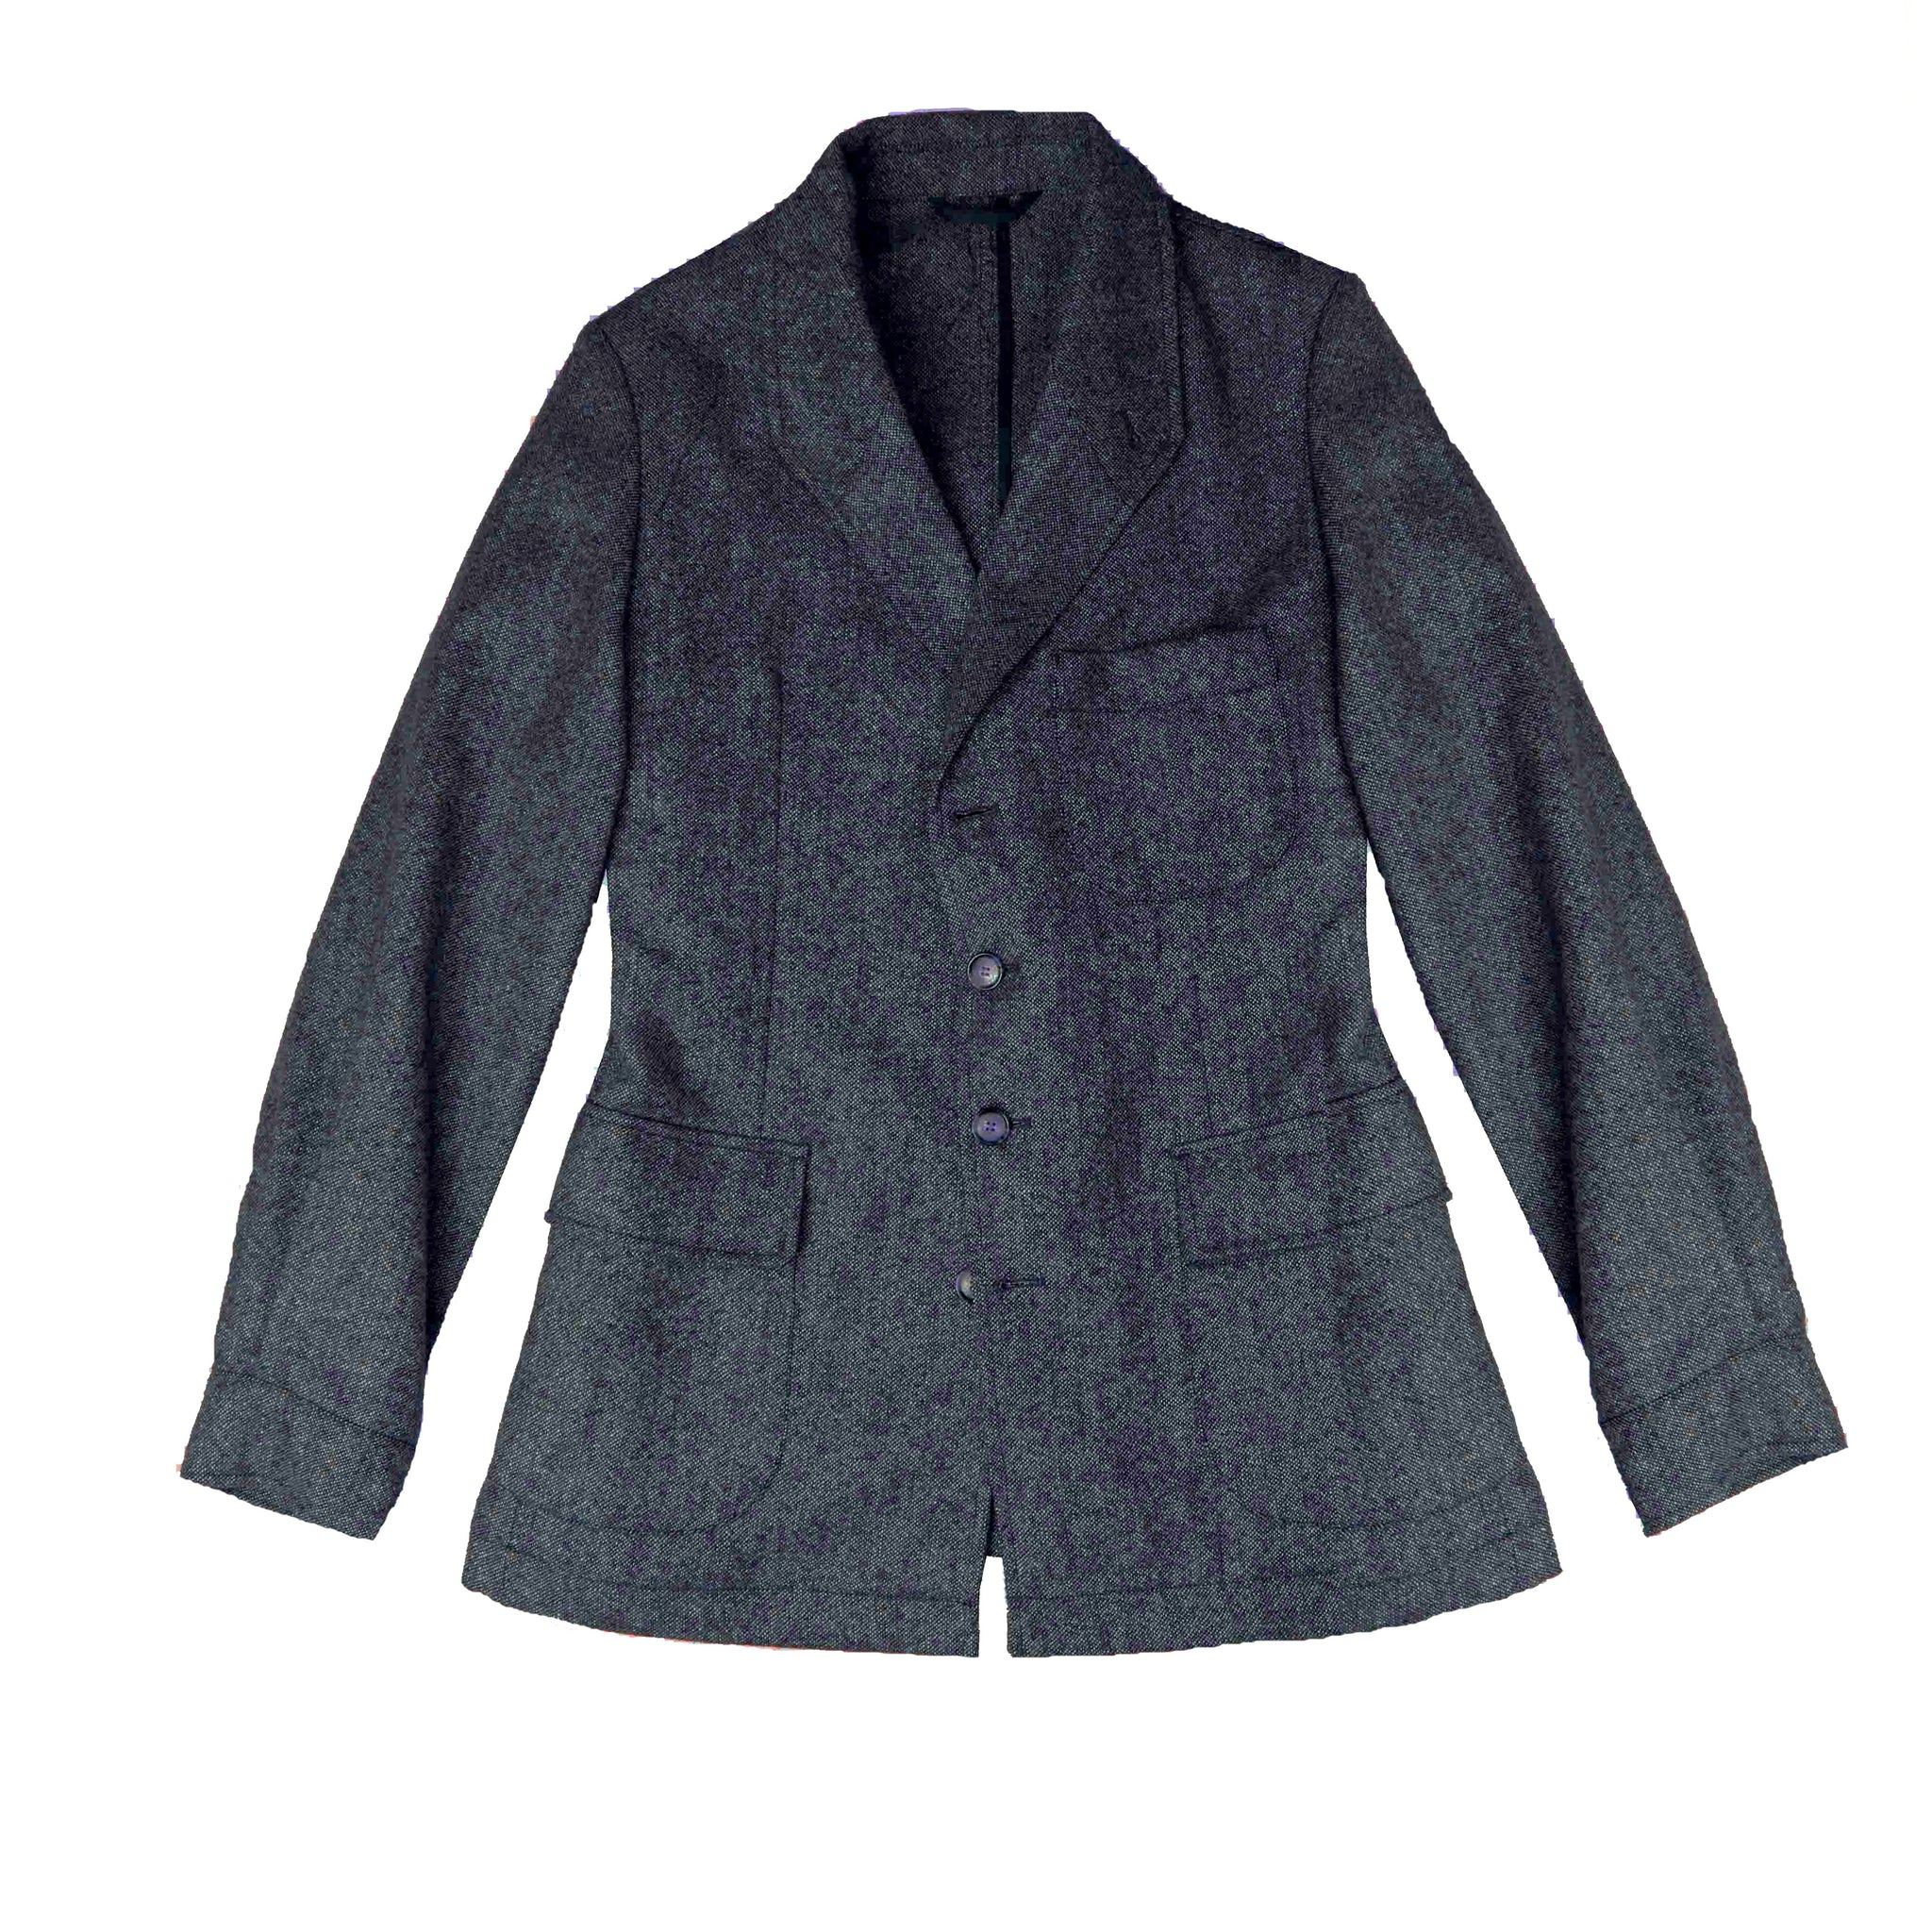 Veste arTeba VS tweed caviar marine